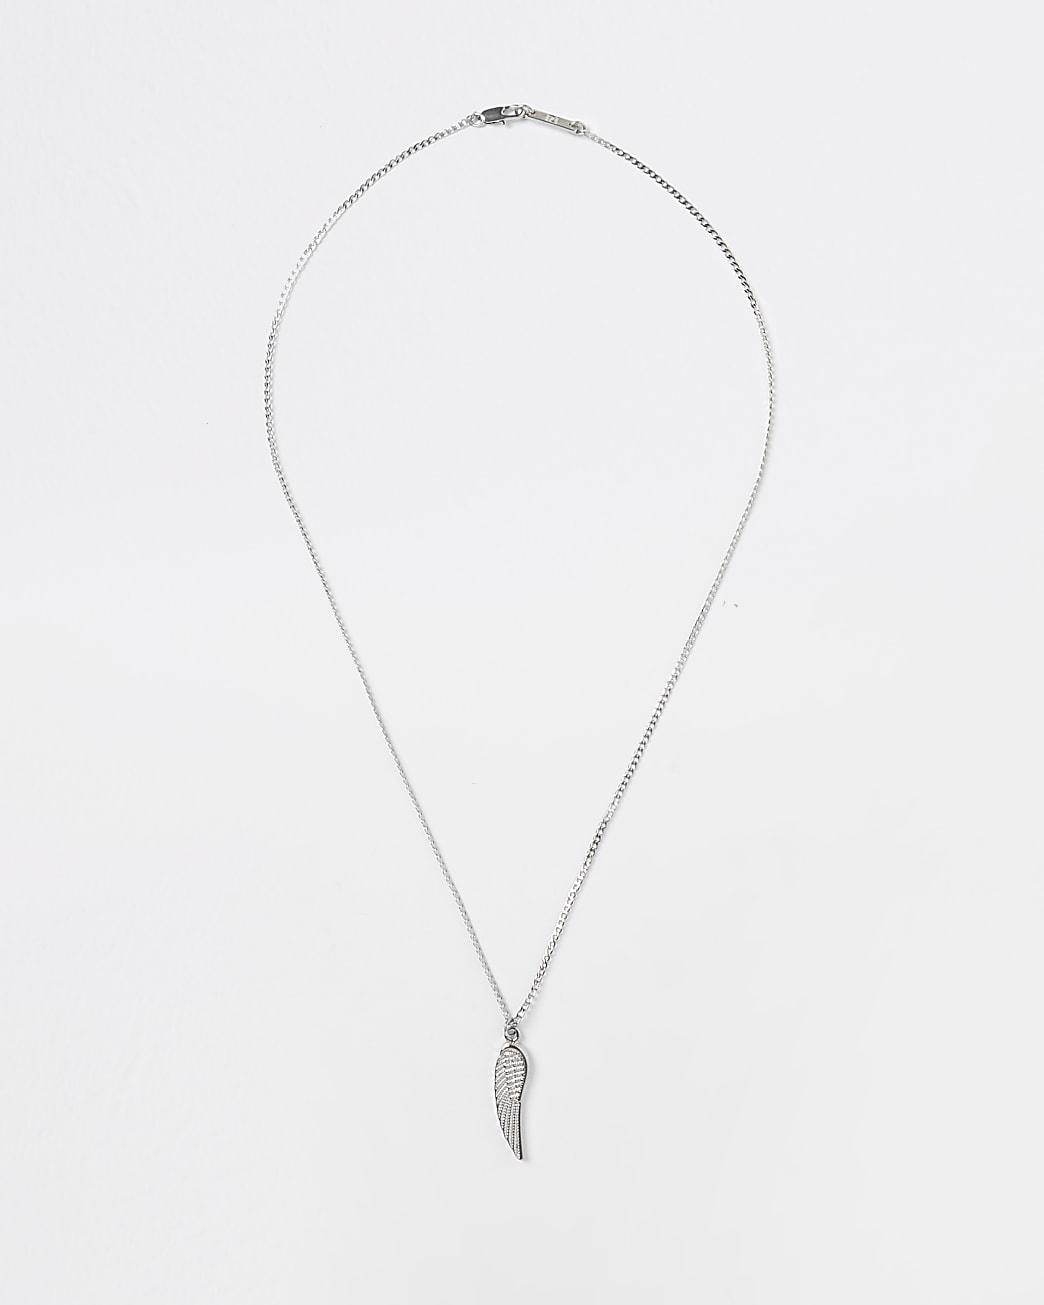 Silver wing pendant necklace